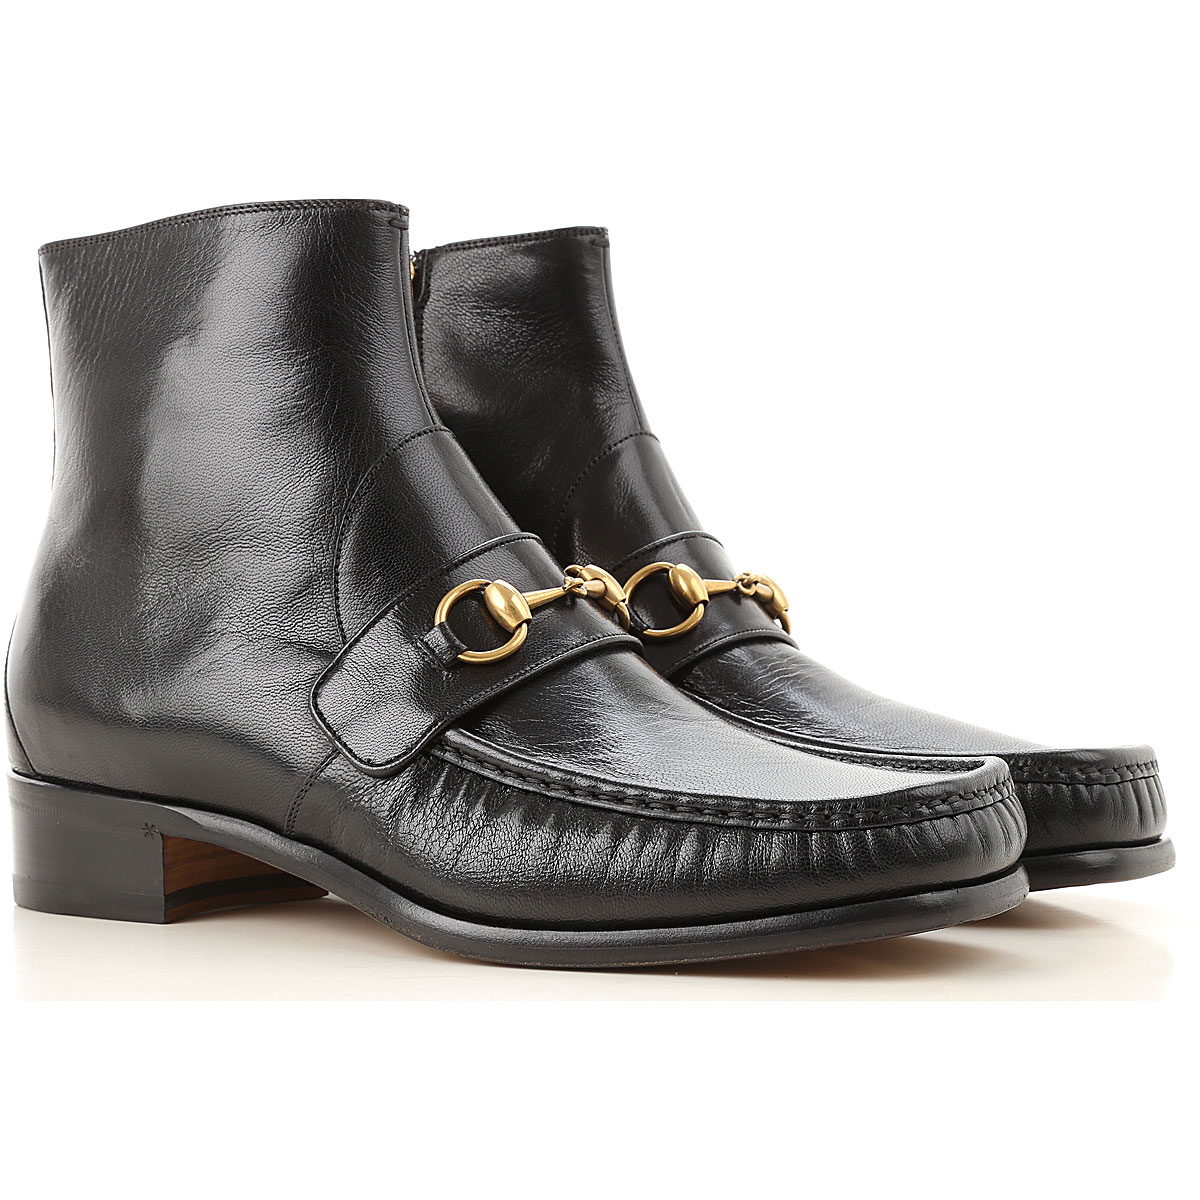 Gucci Boots for Men Booties On Sale SE - GOOFASH